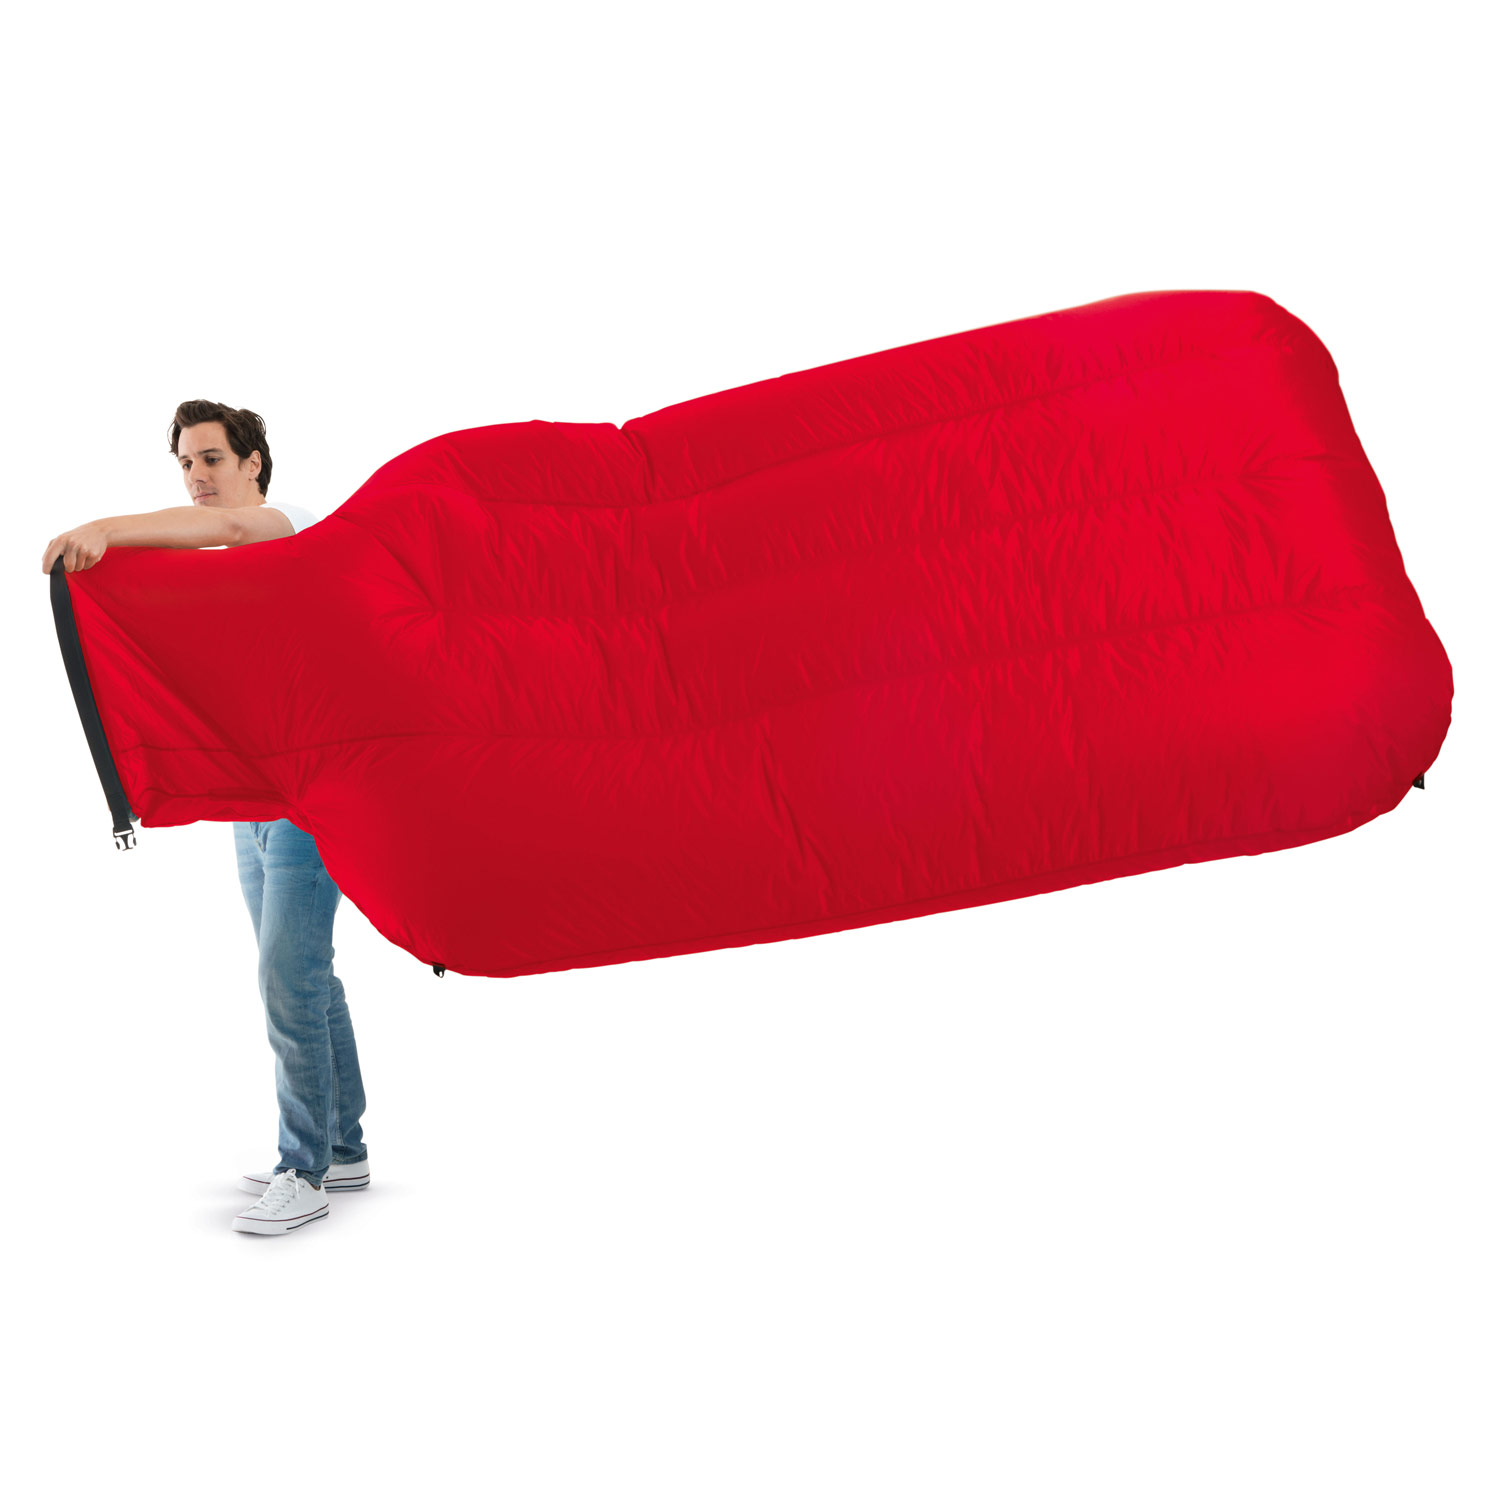 Lamzac Youtube Fatboy Lamzac Xxxl - Massive Instantly Inflatable Lounger